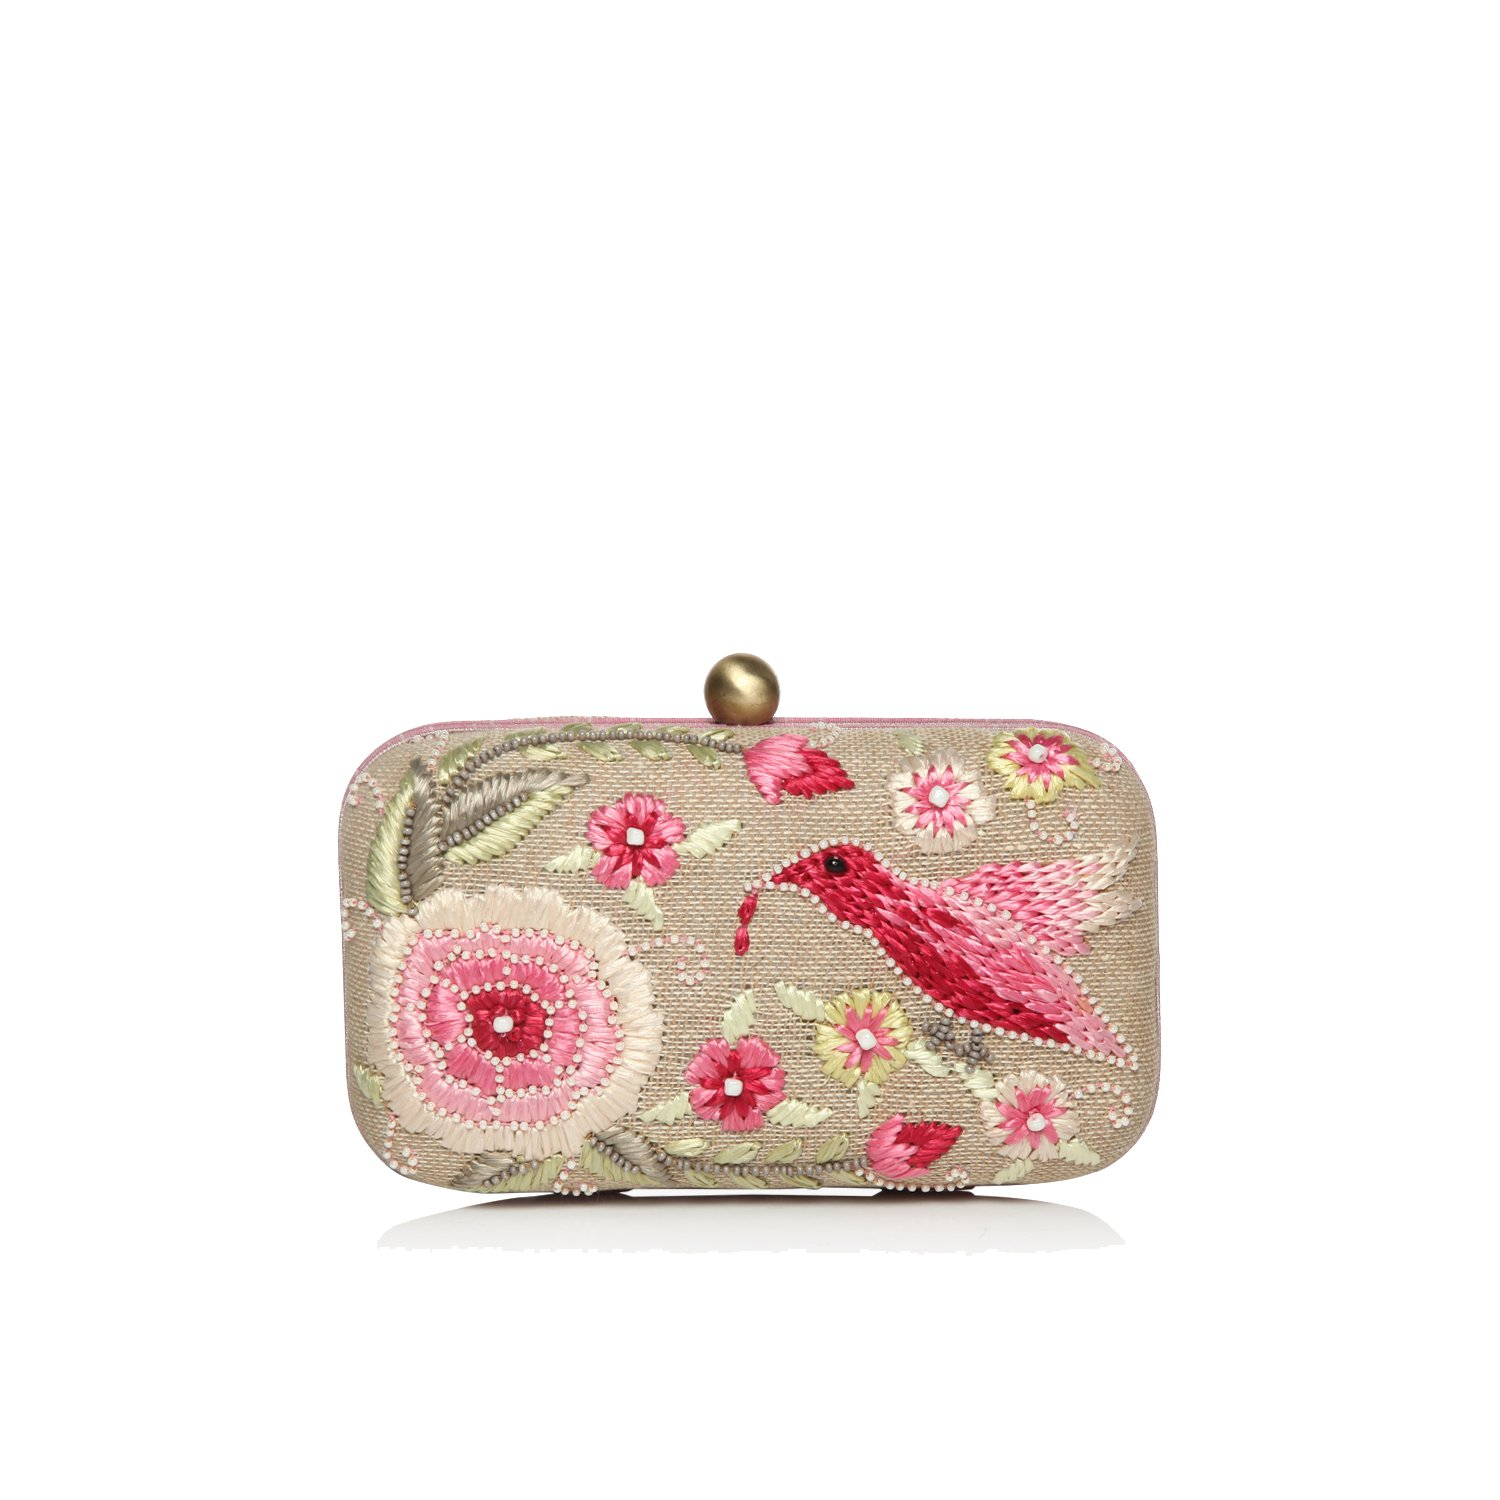 Clutches for Women hard box framed hand embroidered natural multi colored party Evening clutch